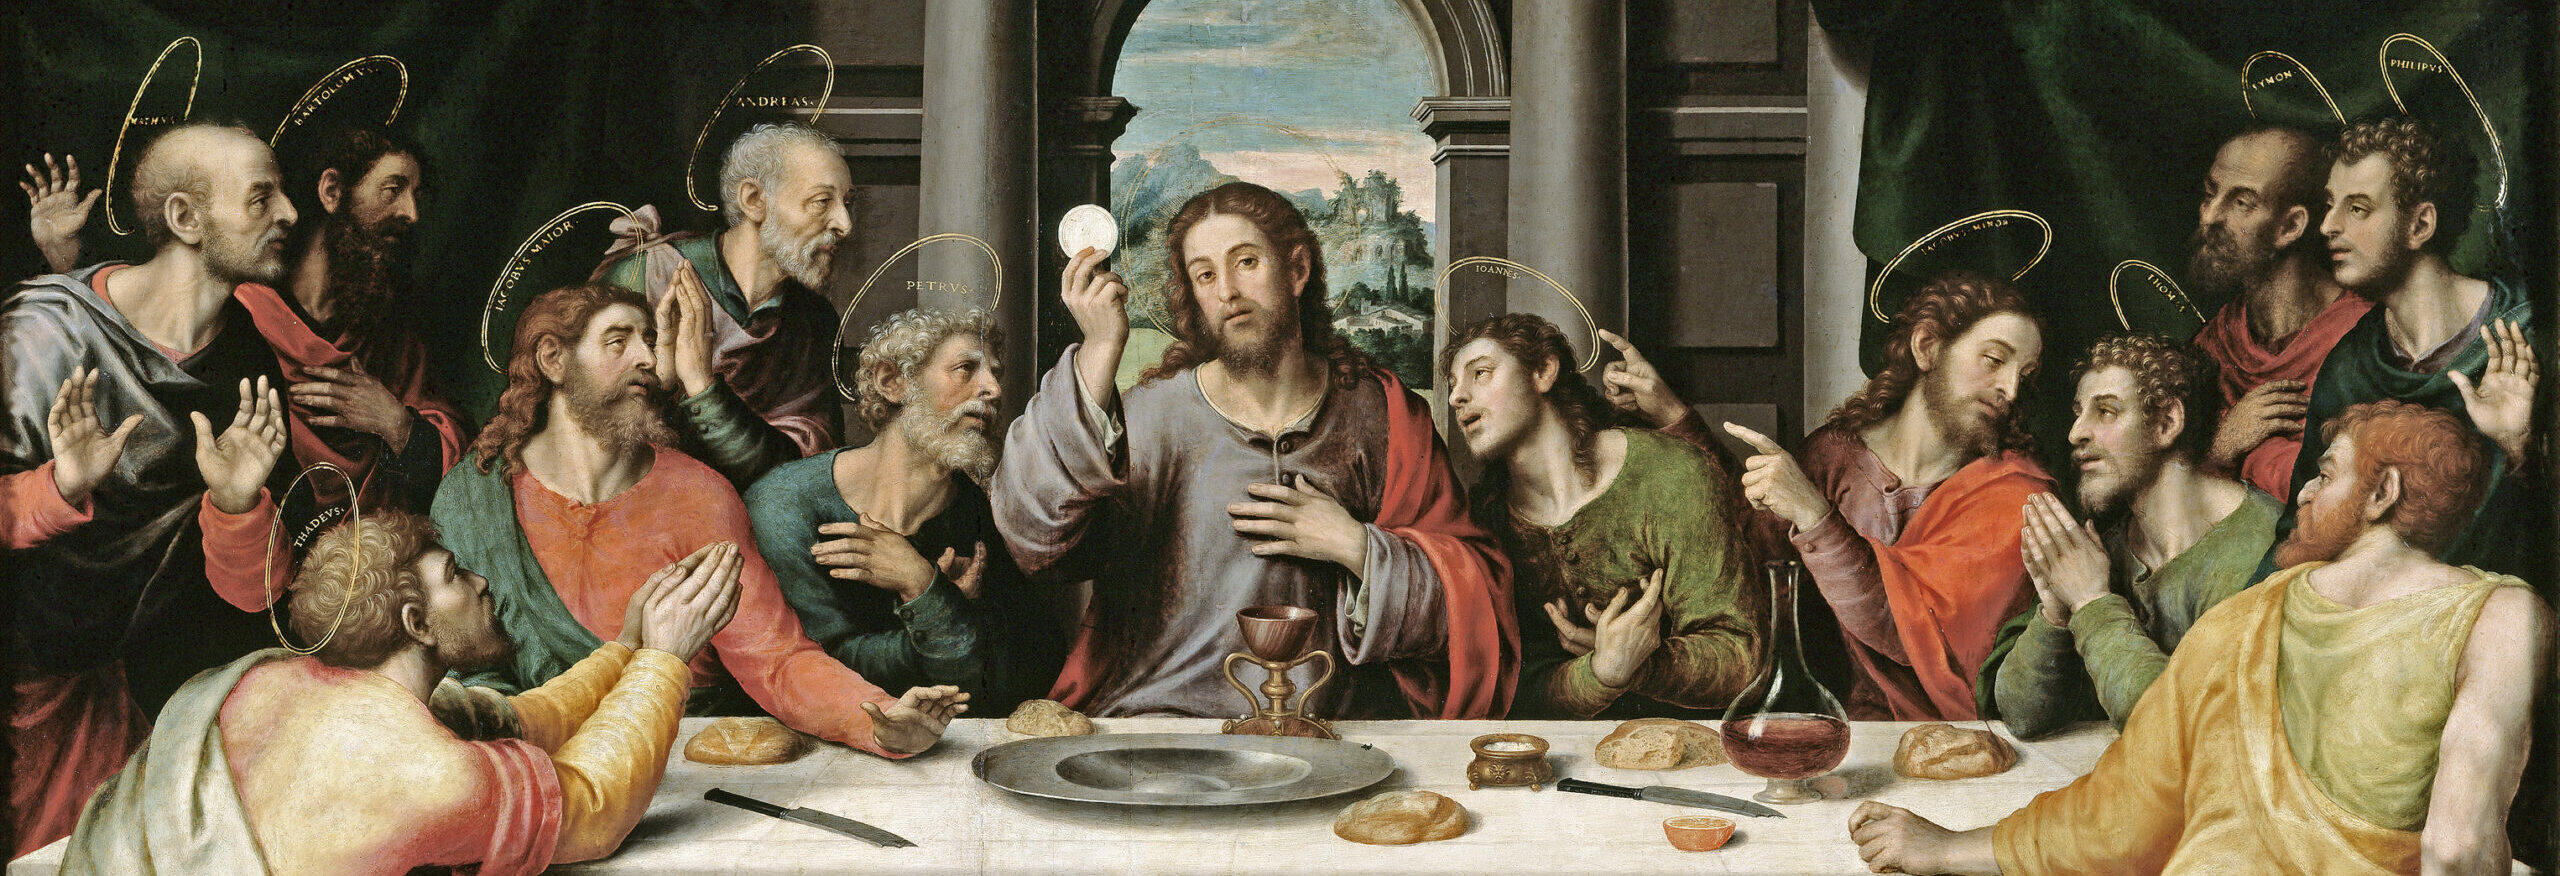 The Eucharist needs to be more inclusive